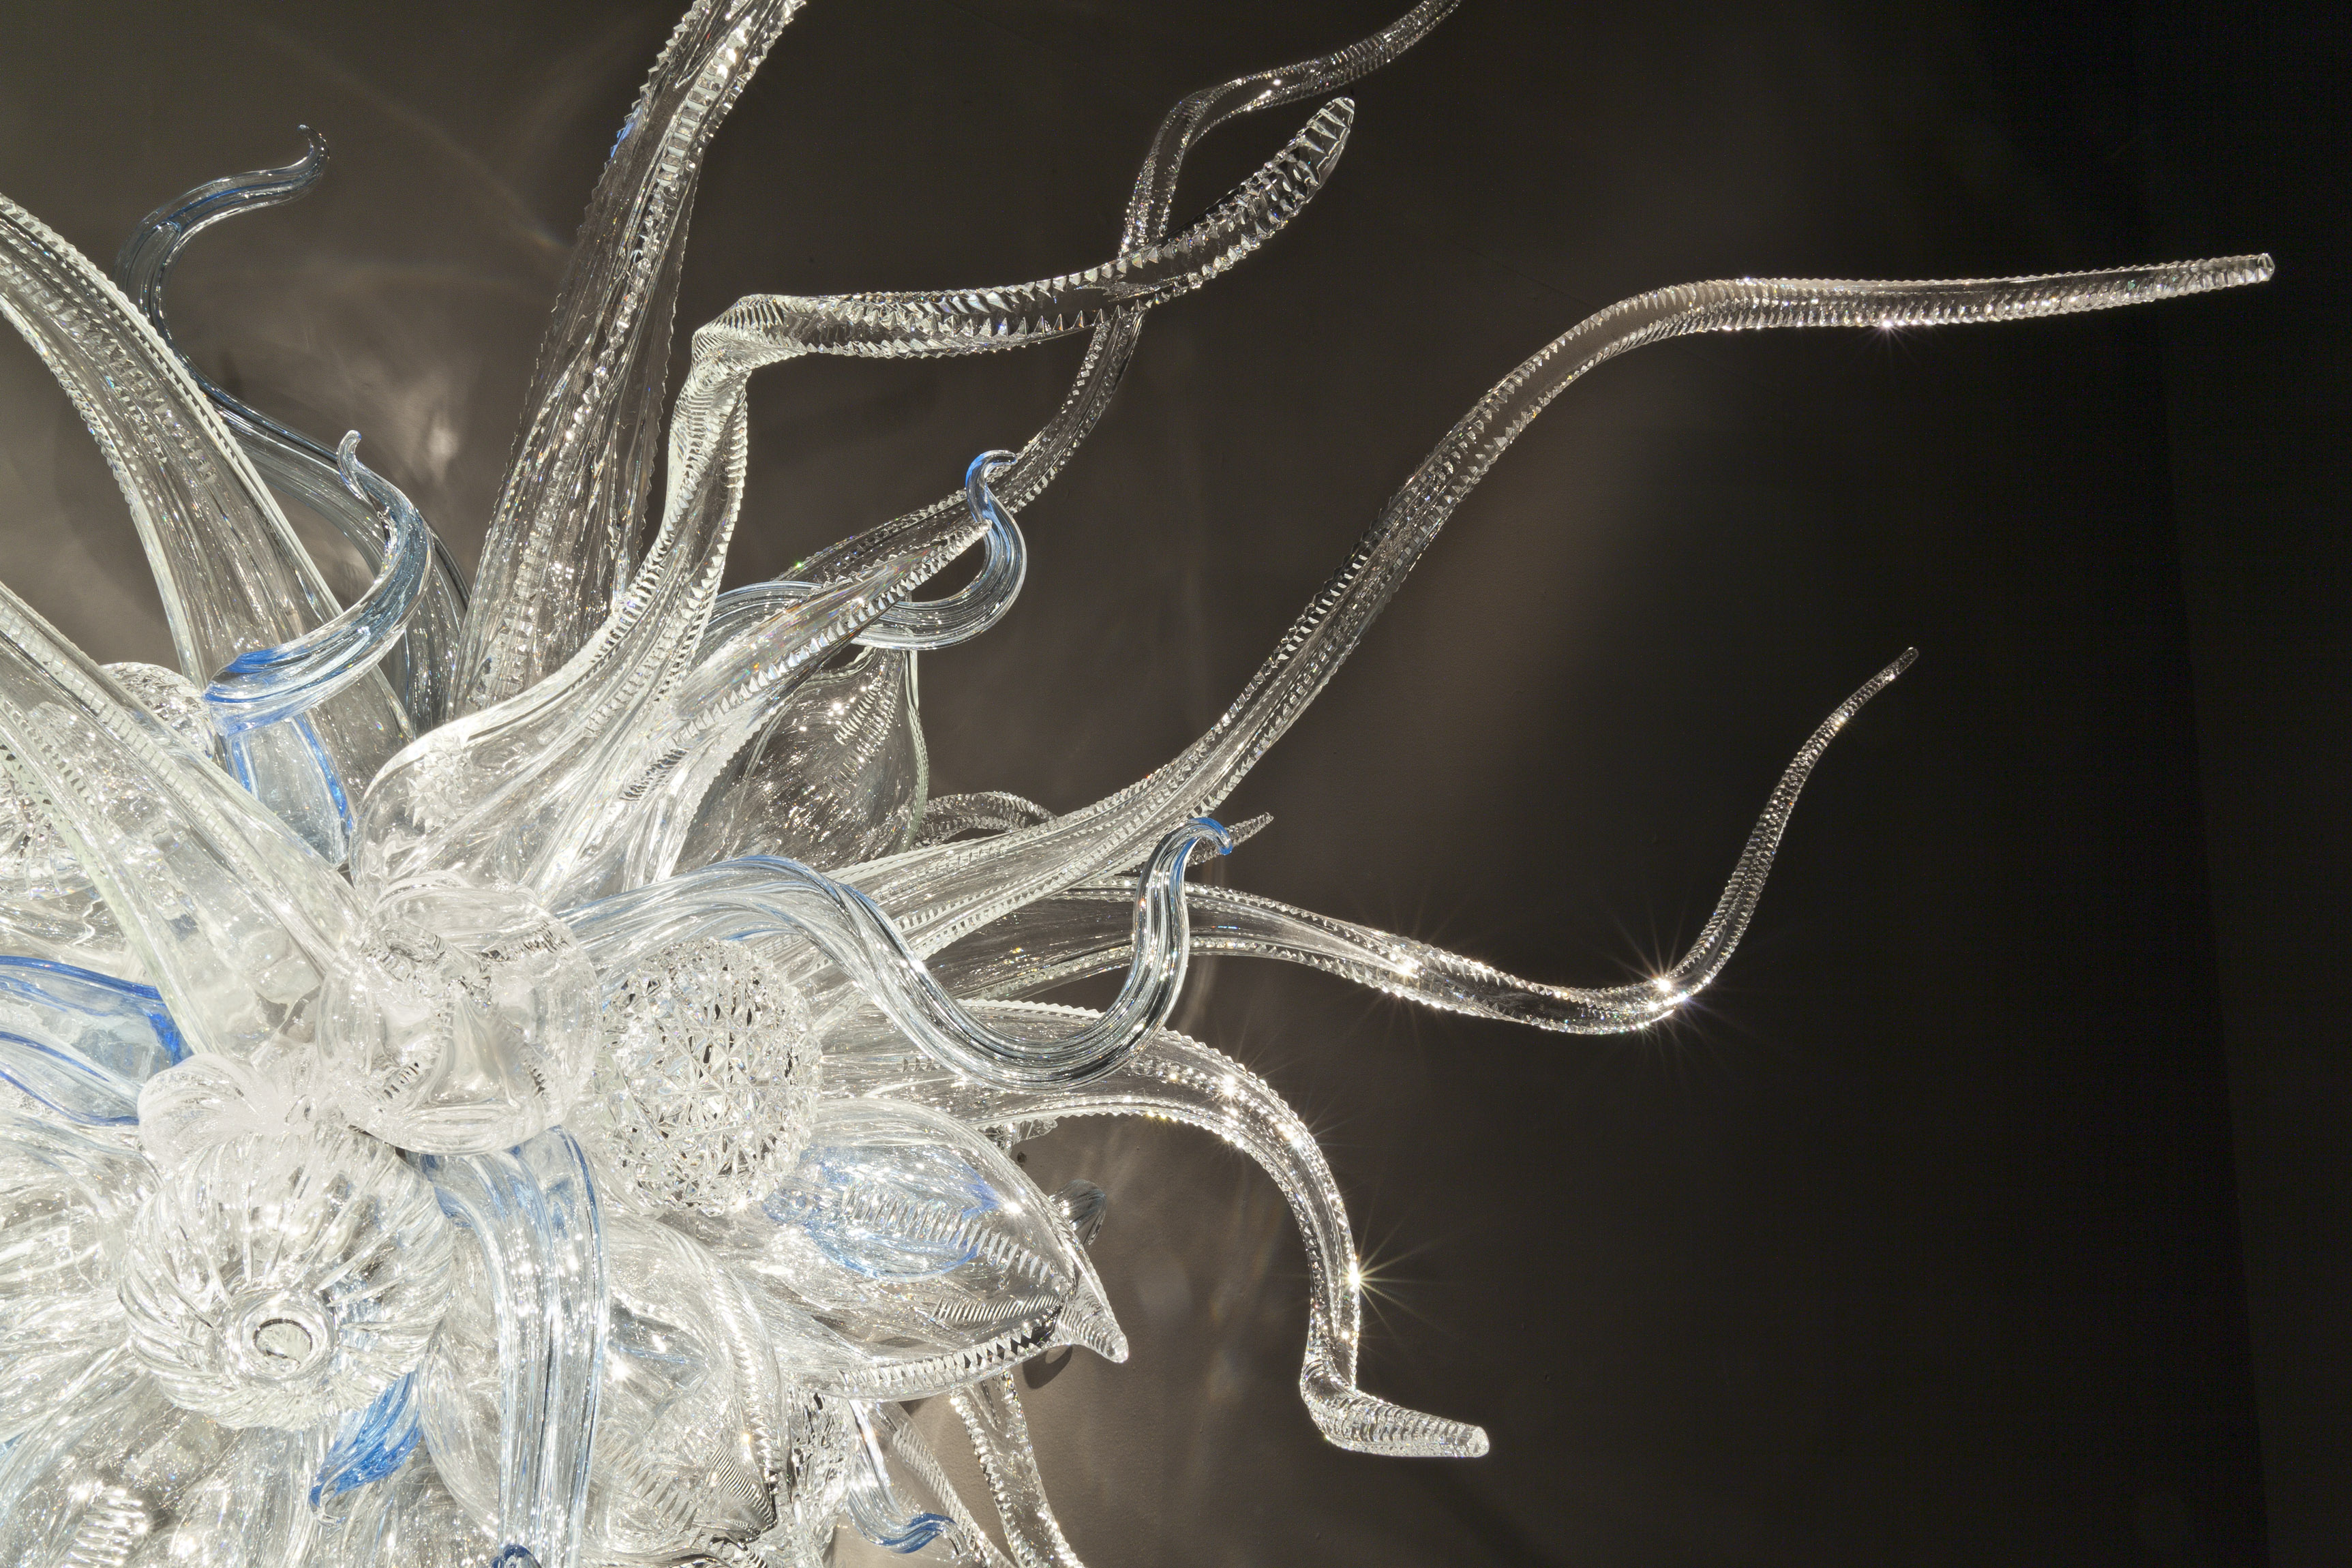 Dale Chihuly, Waterford Sconce (detail), 2011, 155 x 153 x 69cm